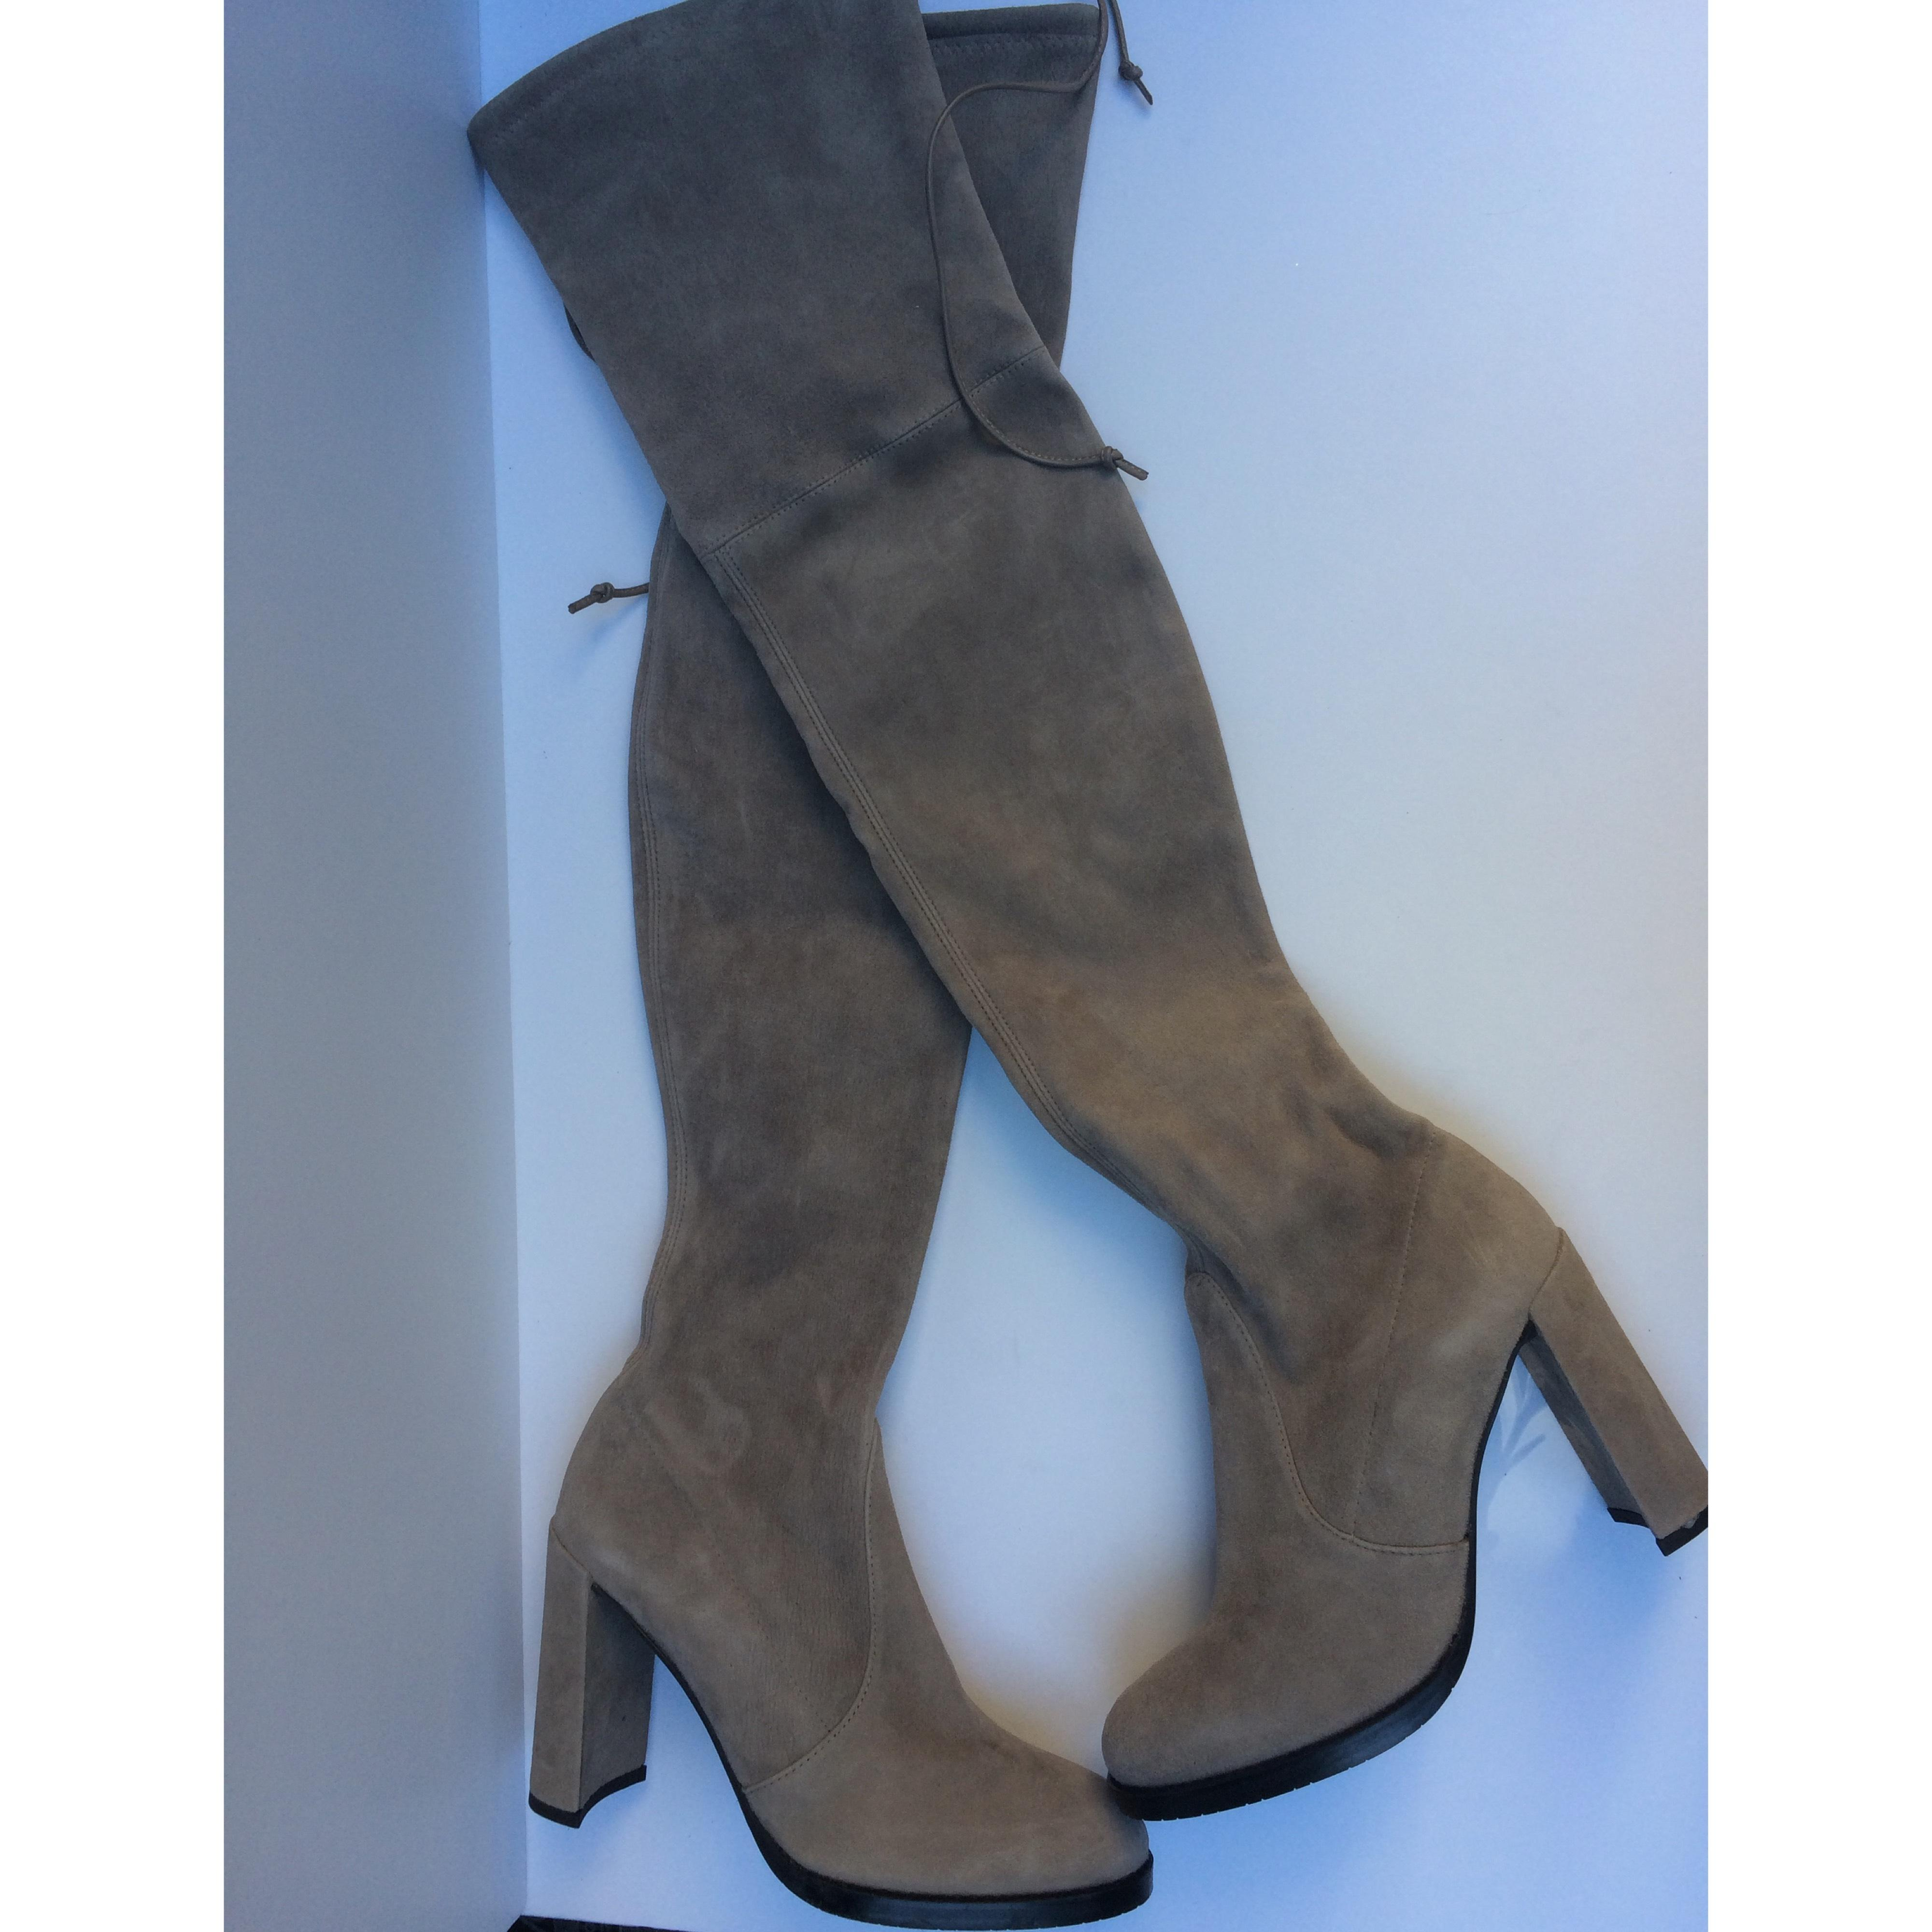 6466e4bfb07a ... Stuart Weitzman New Highland Highland Highland Over The Knee  Boots Booties Size US 6 Regular ...